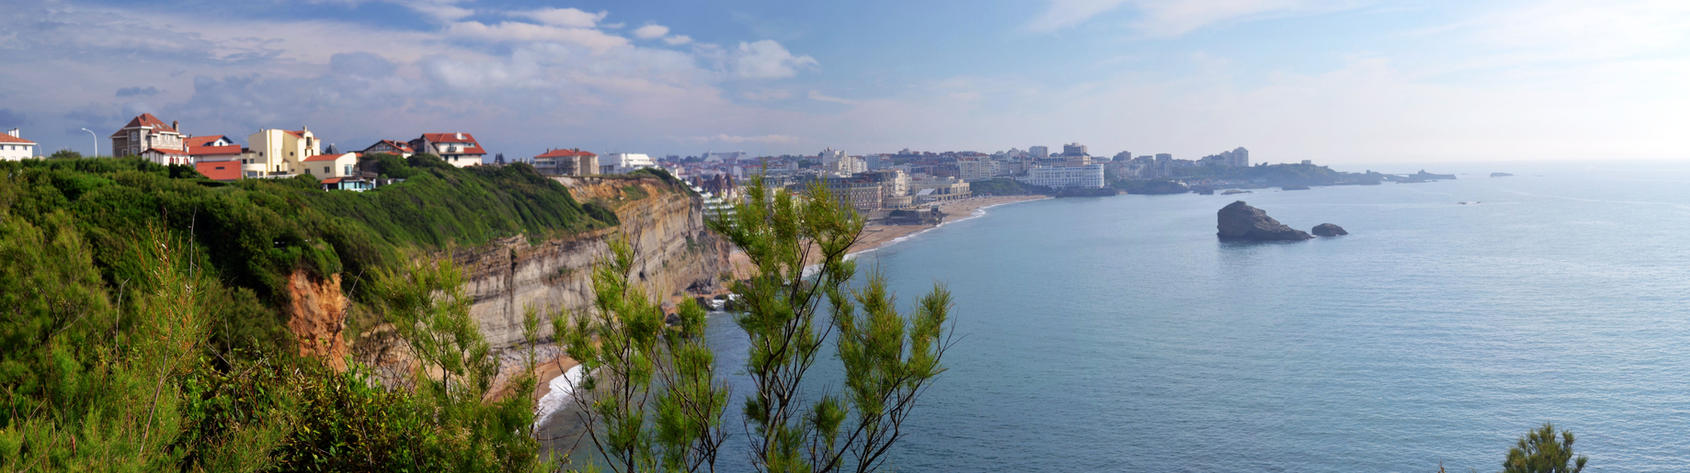 Biarritz - la cote basque by Aude-la-randonneuse